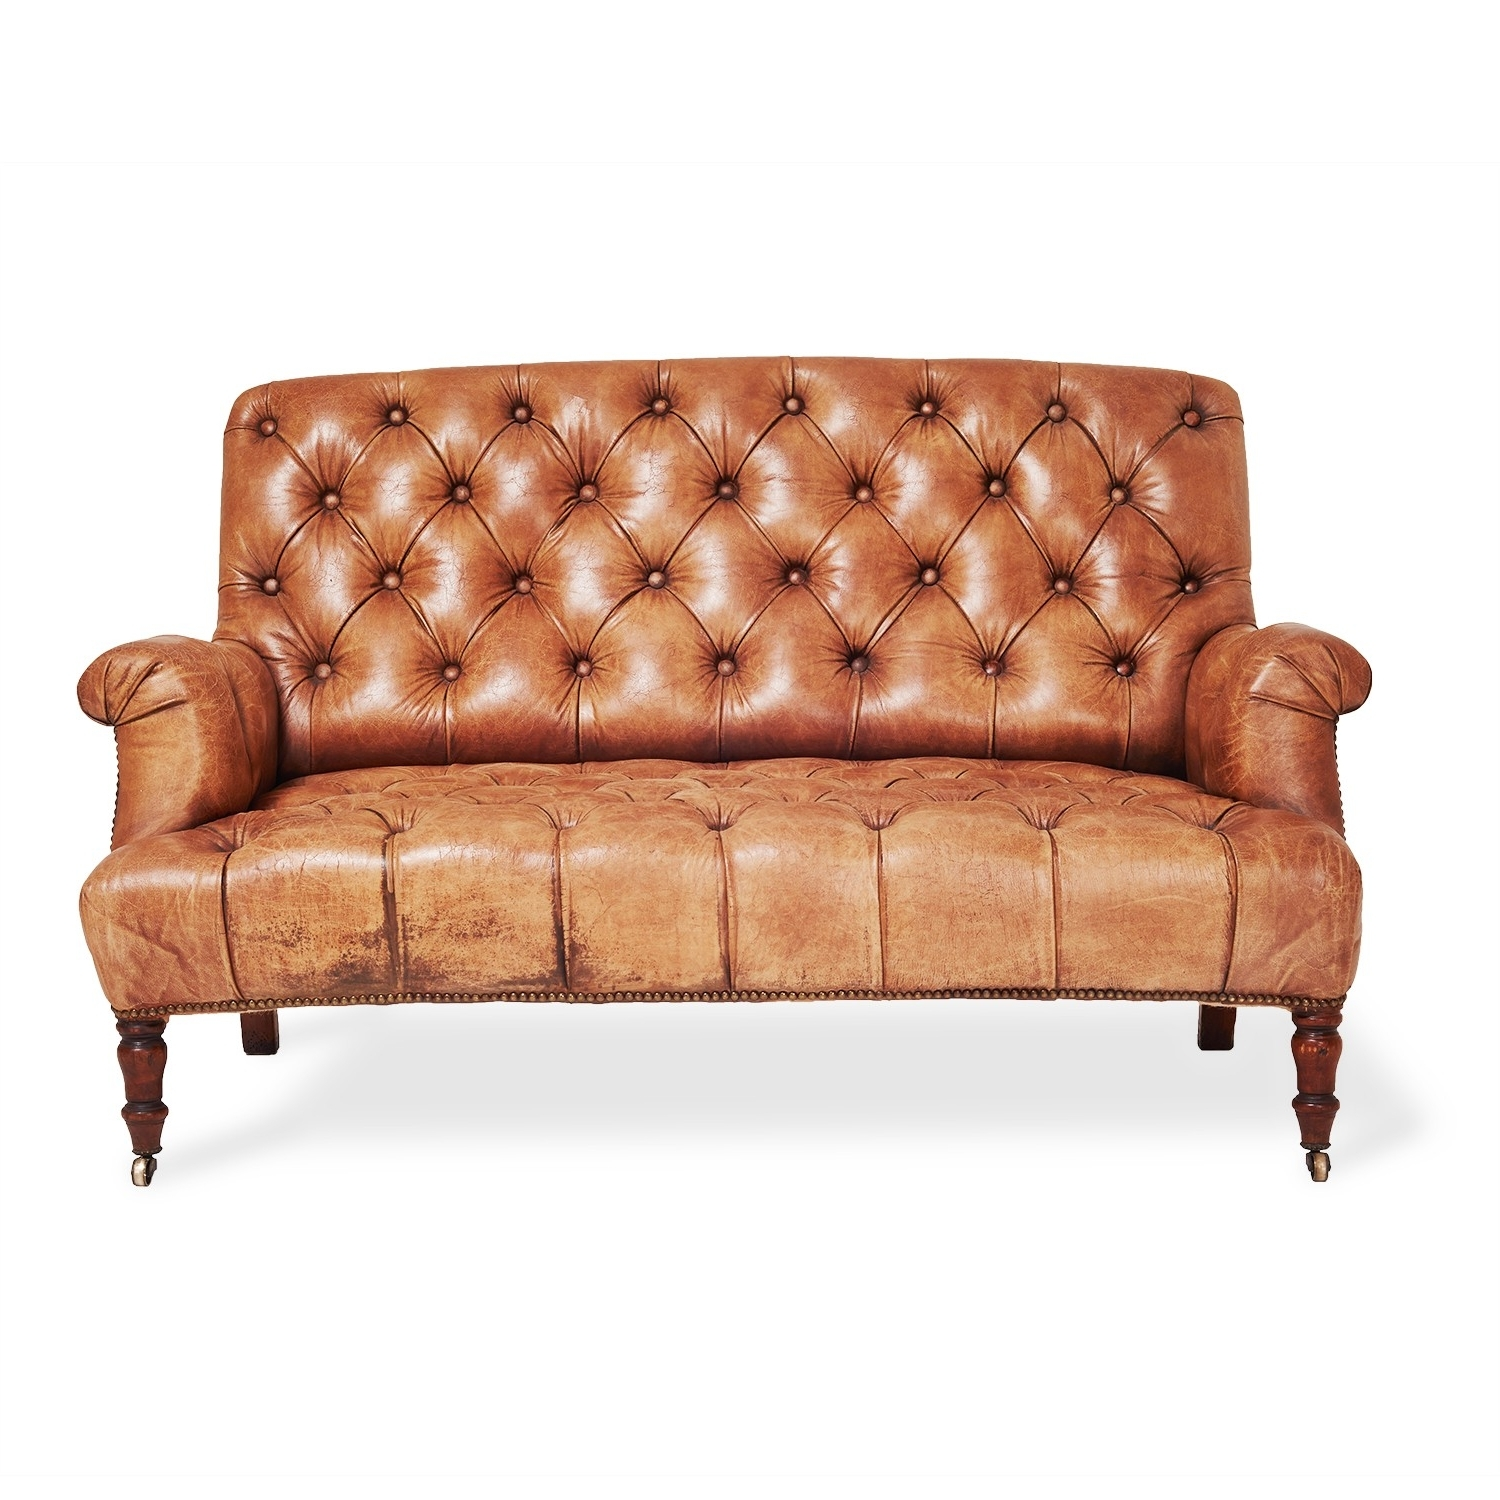 Furniture 2 Seater Brown Leather Tufted Sofa With Wooden Legs For Regarding Most Recently Released Affordable Tufted Sofas (View 9 of 20)